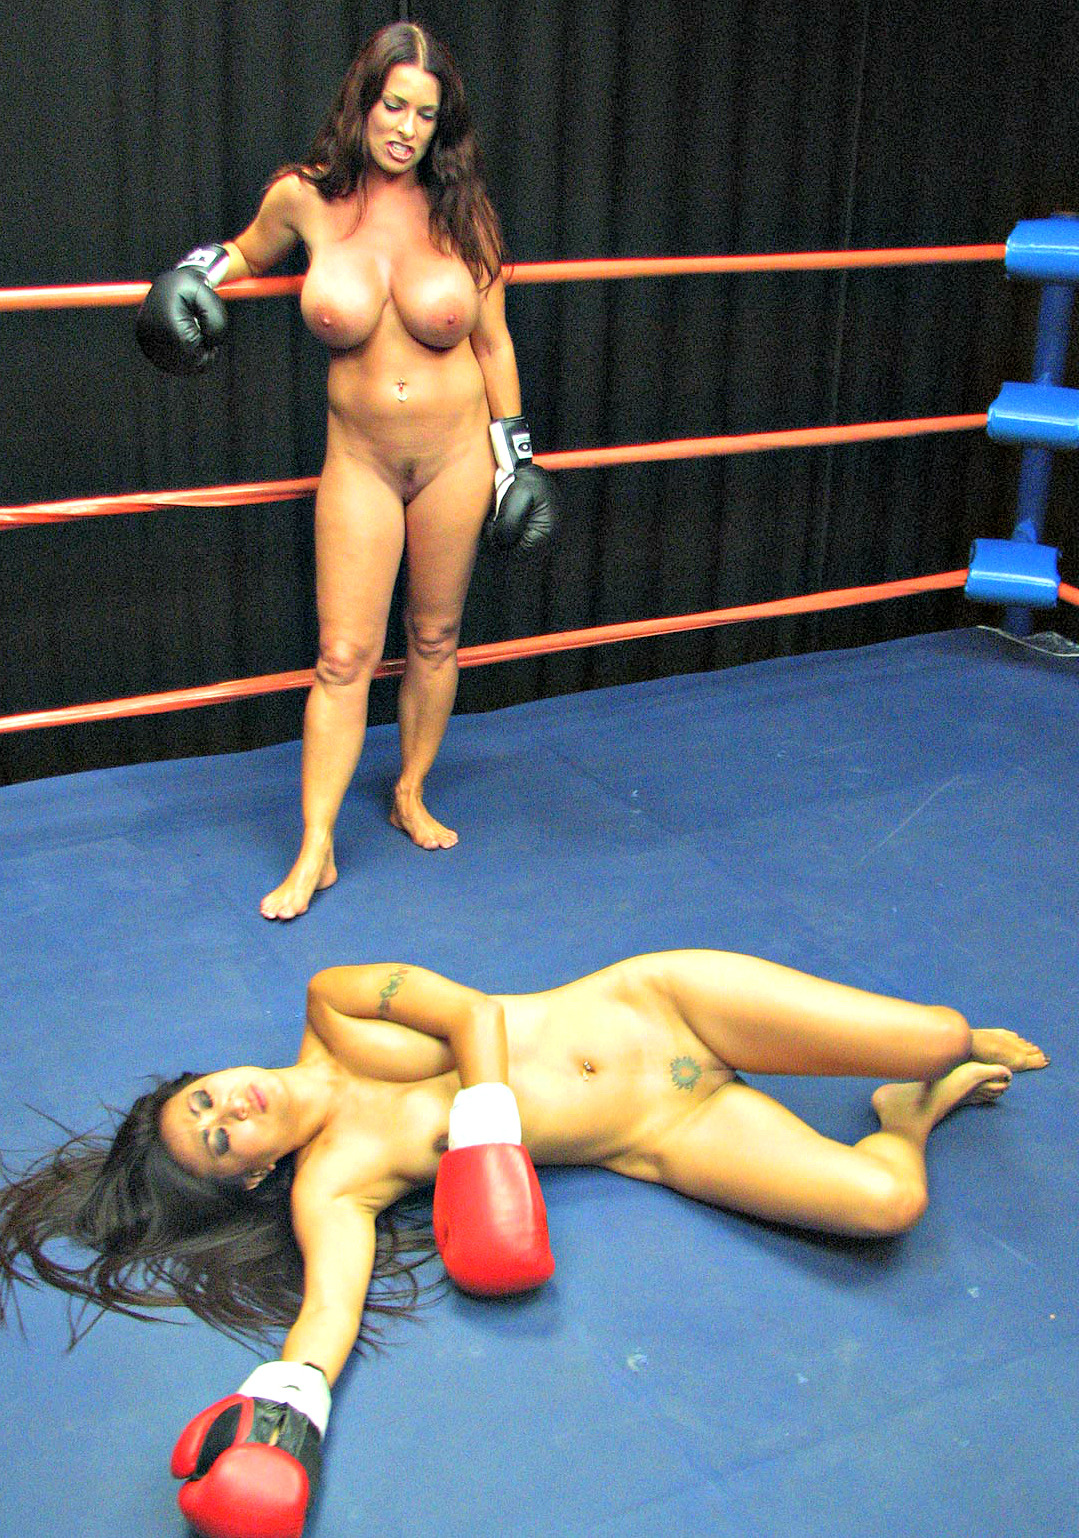 Corona ring girls boxing ring girls that you should follow on ig nude picture